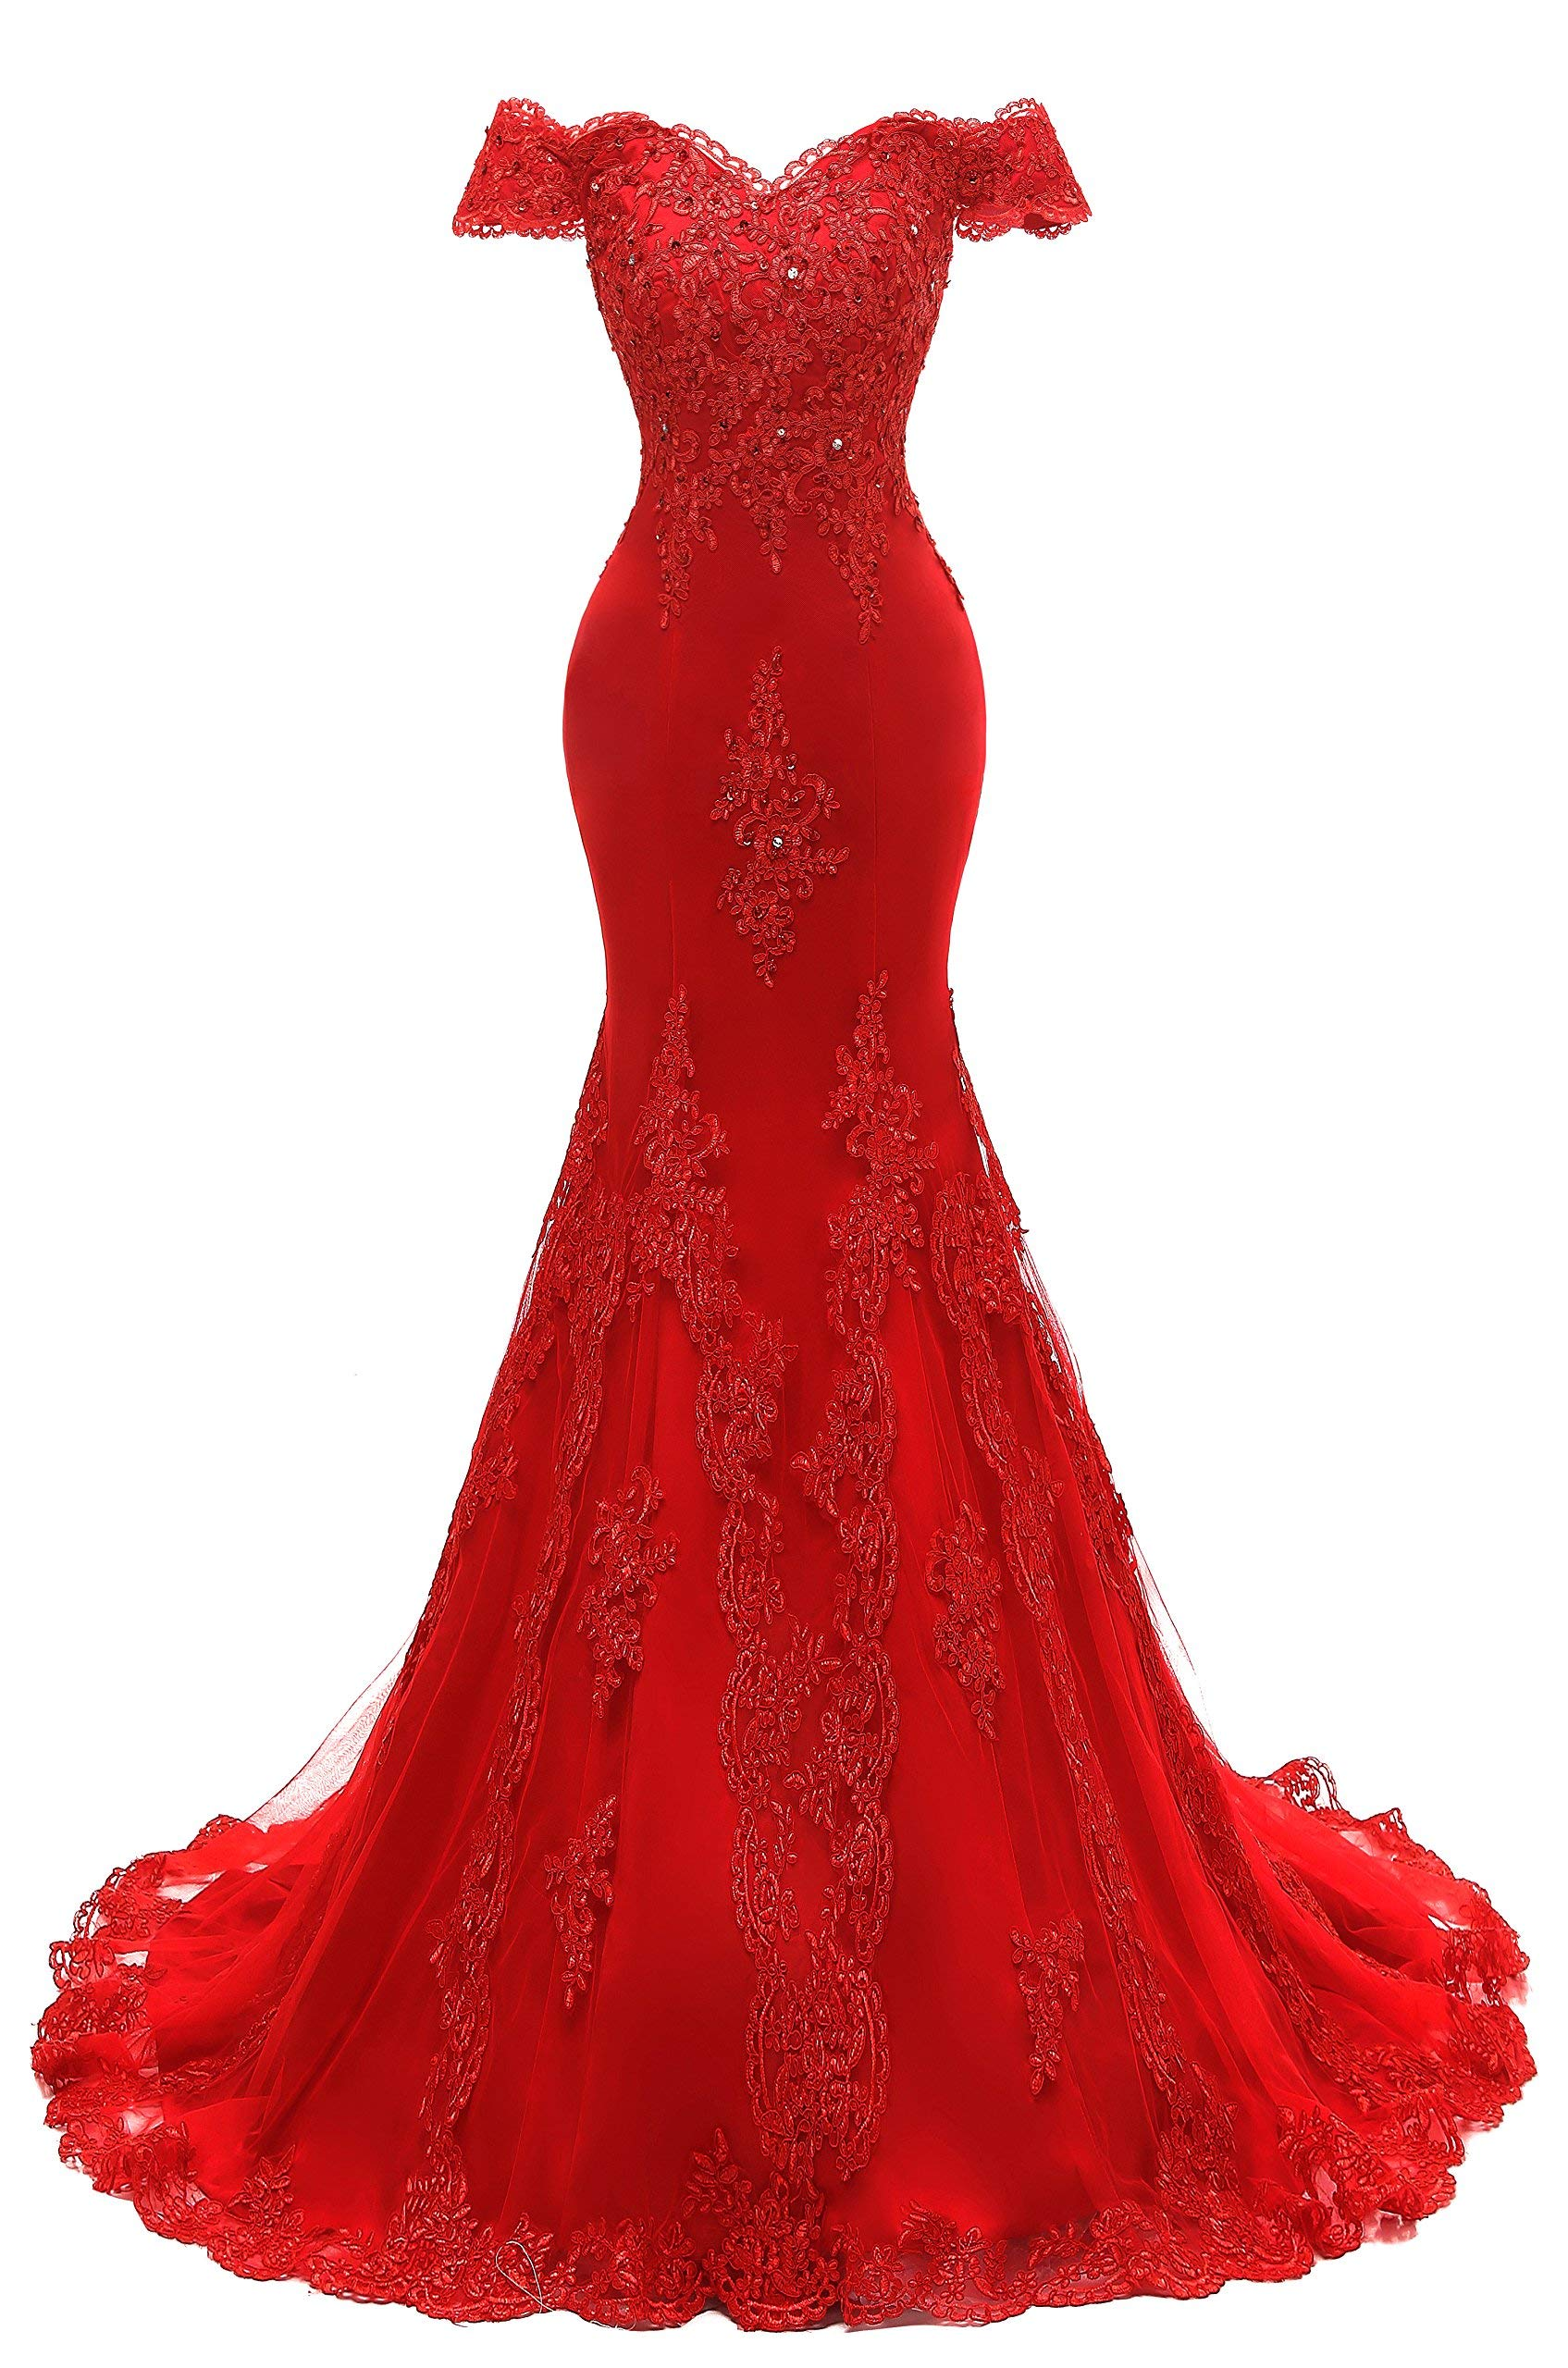 b0ea01314b ... Off Shoulder Evening Prom Dresses Lace Appliqued Beaded Formal Party  Gowns Red 04.   